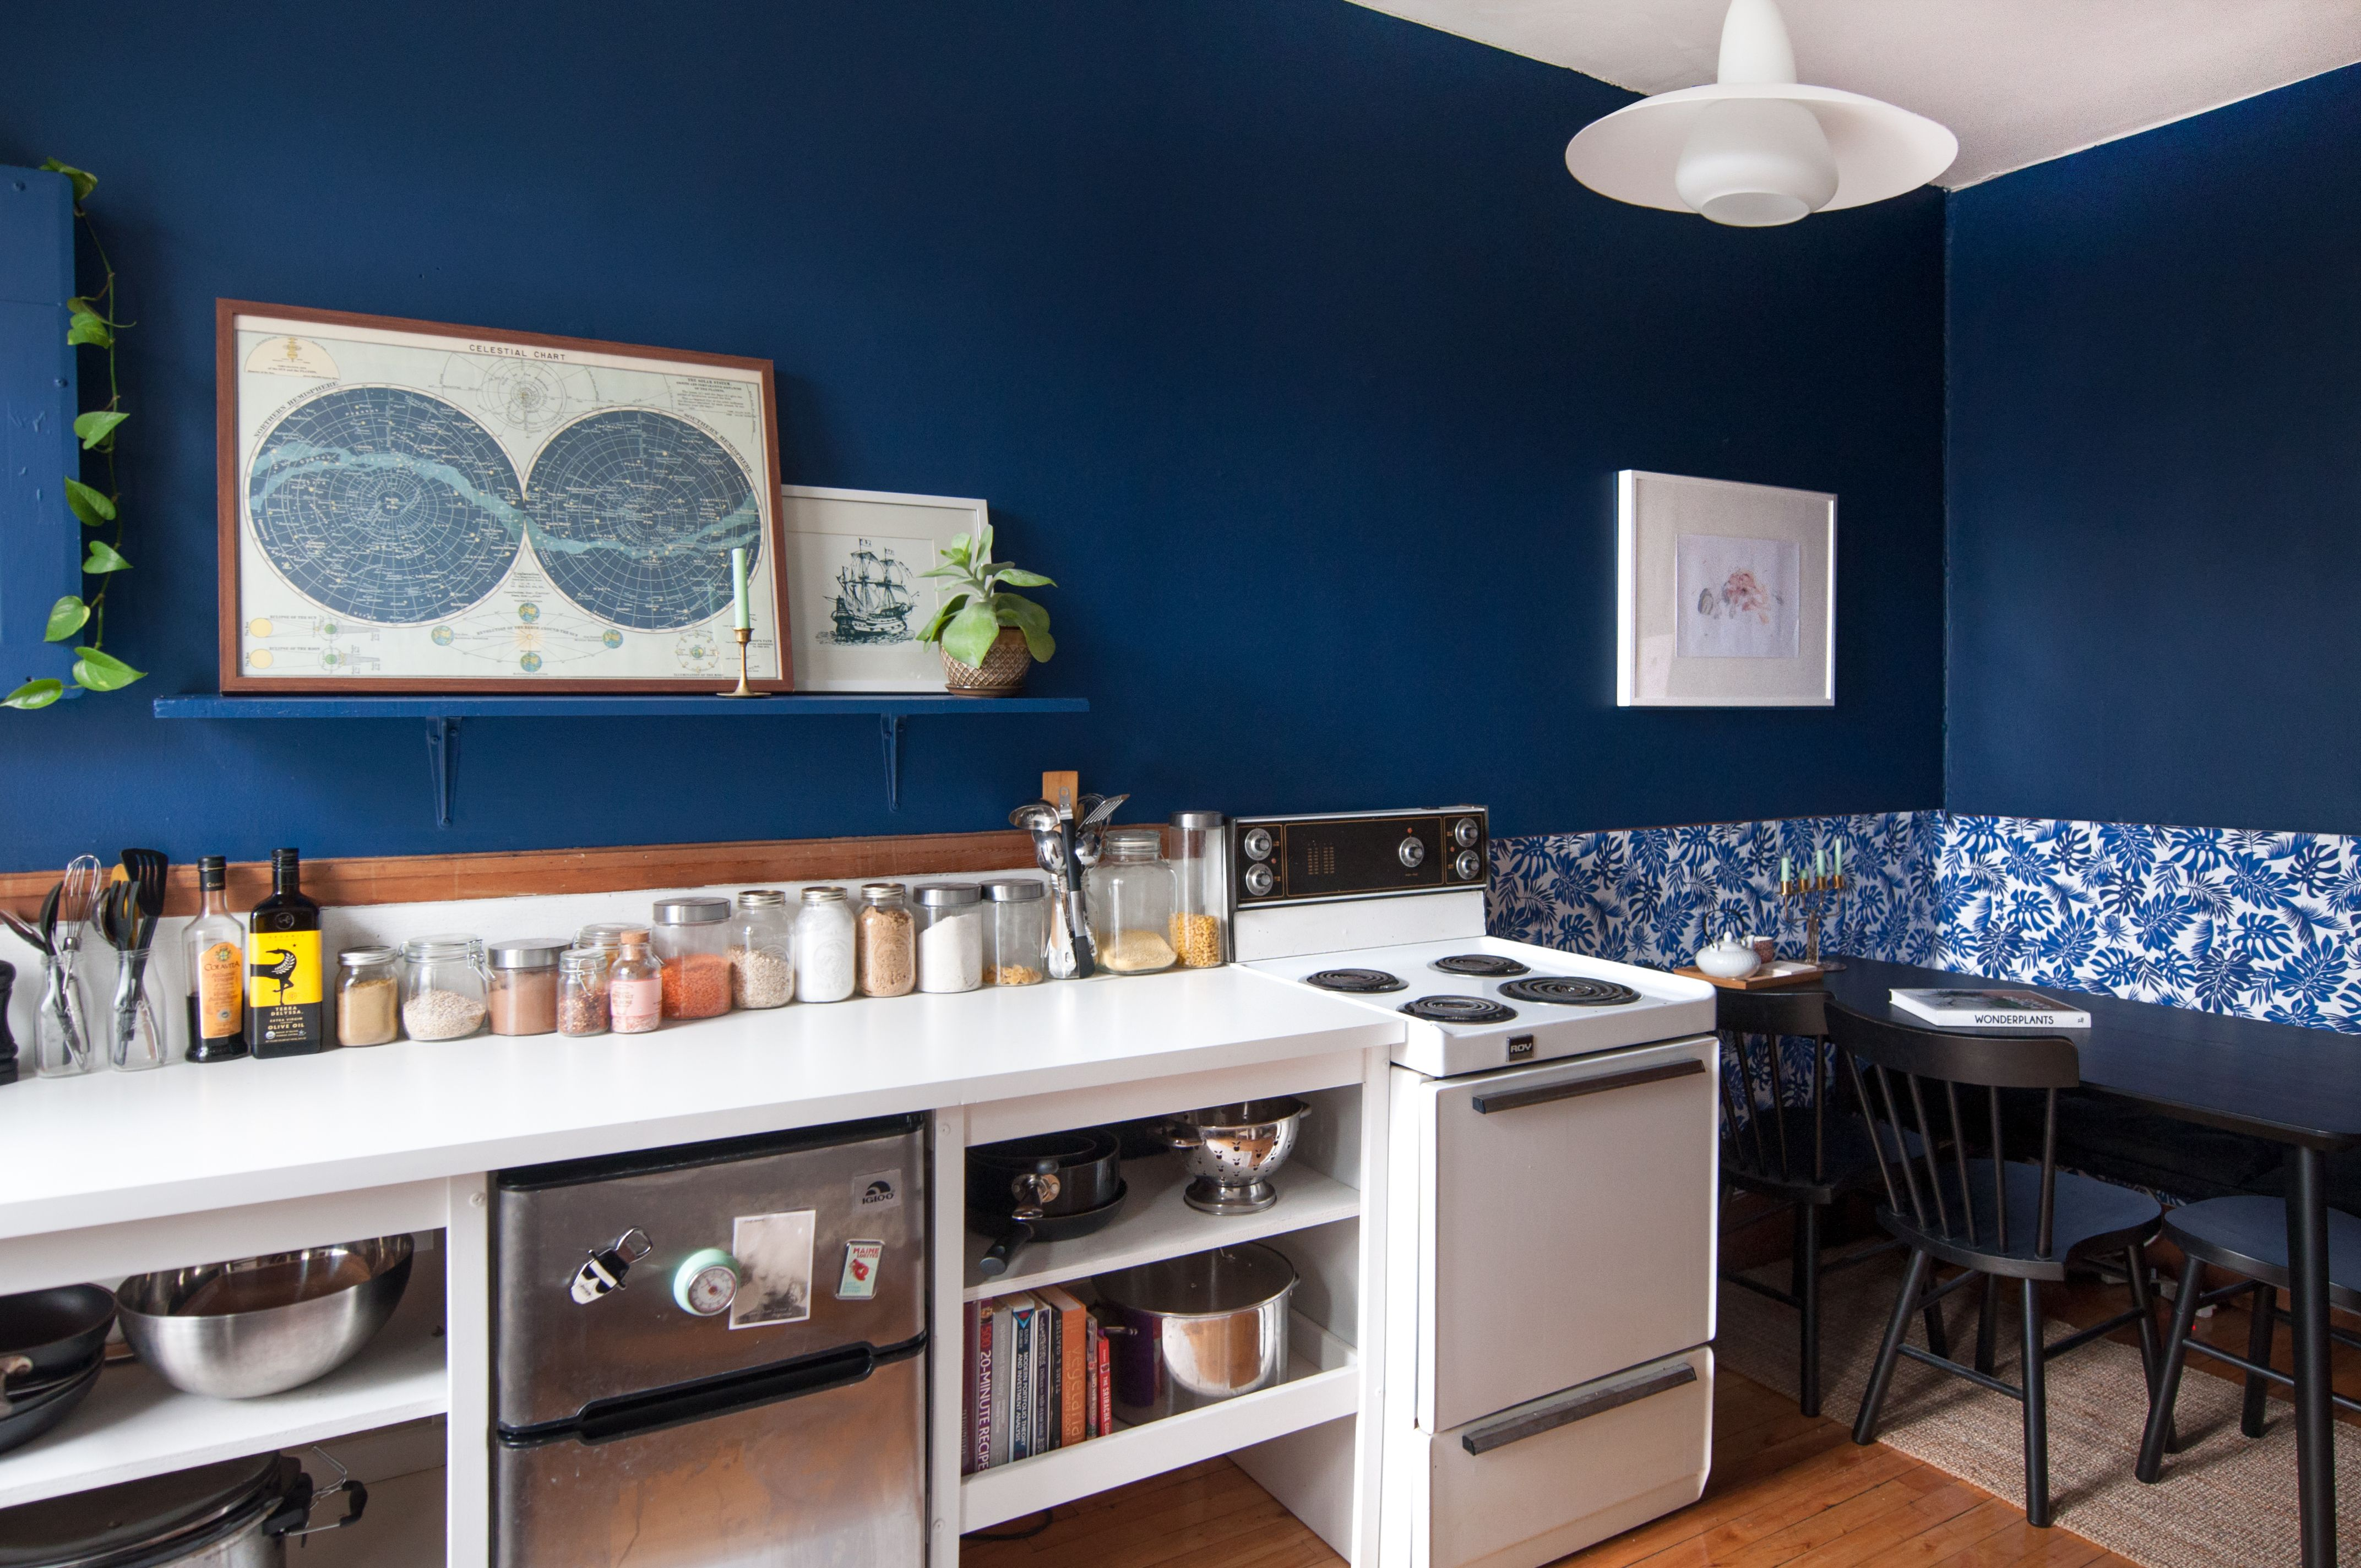 The Clever Small Space Kitchen Hack Hiding in IKEA's ...